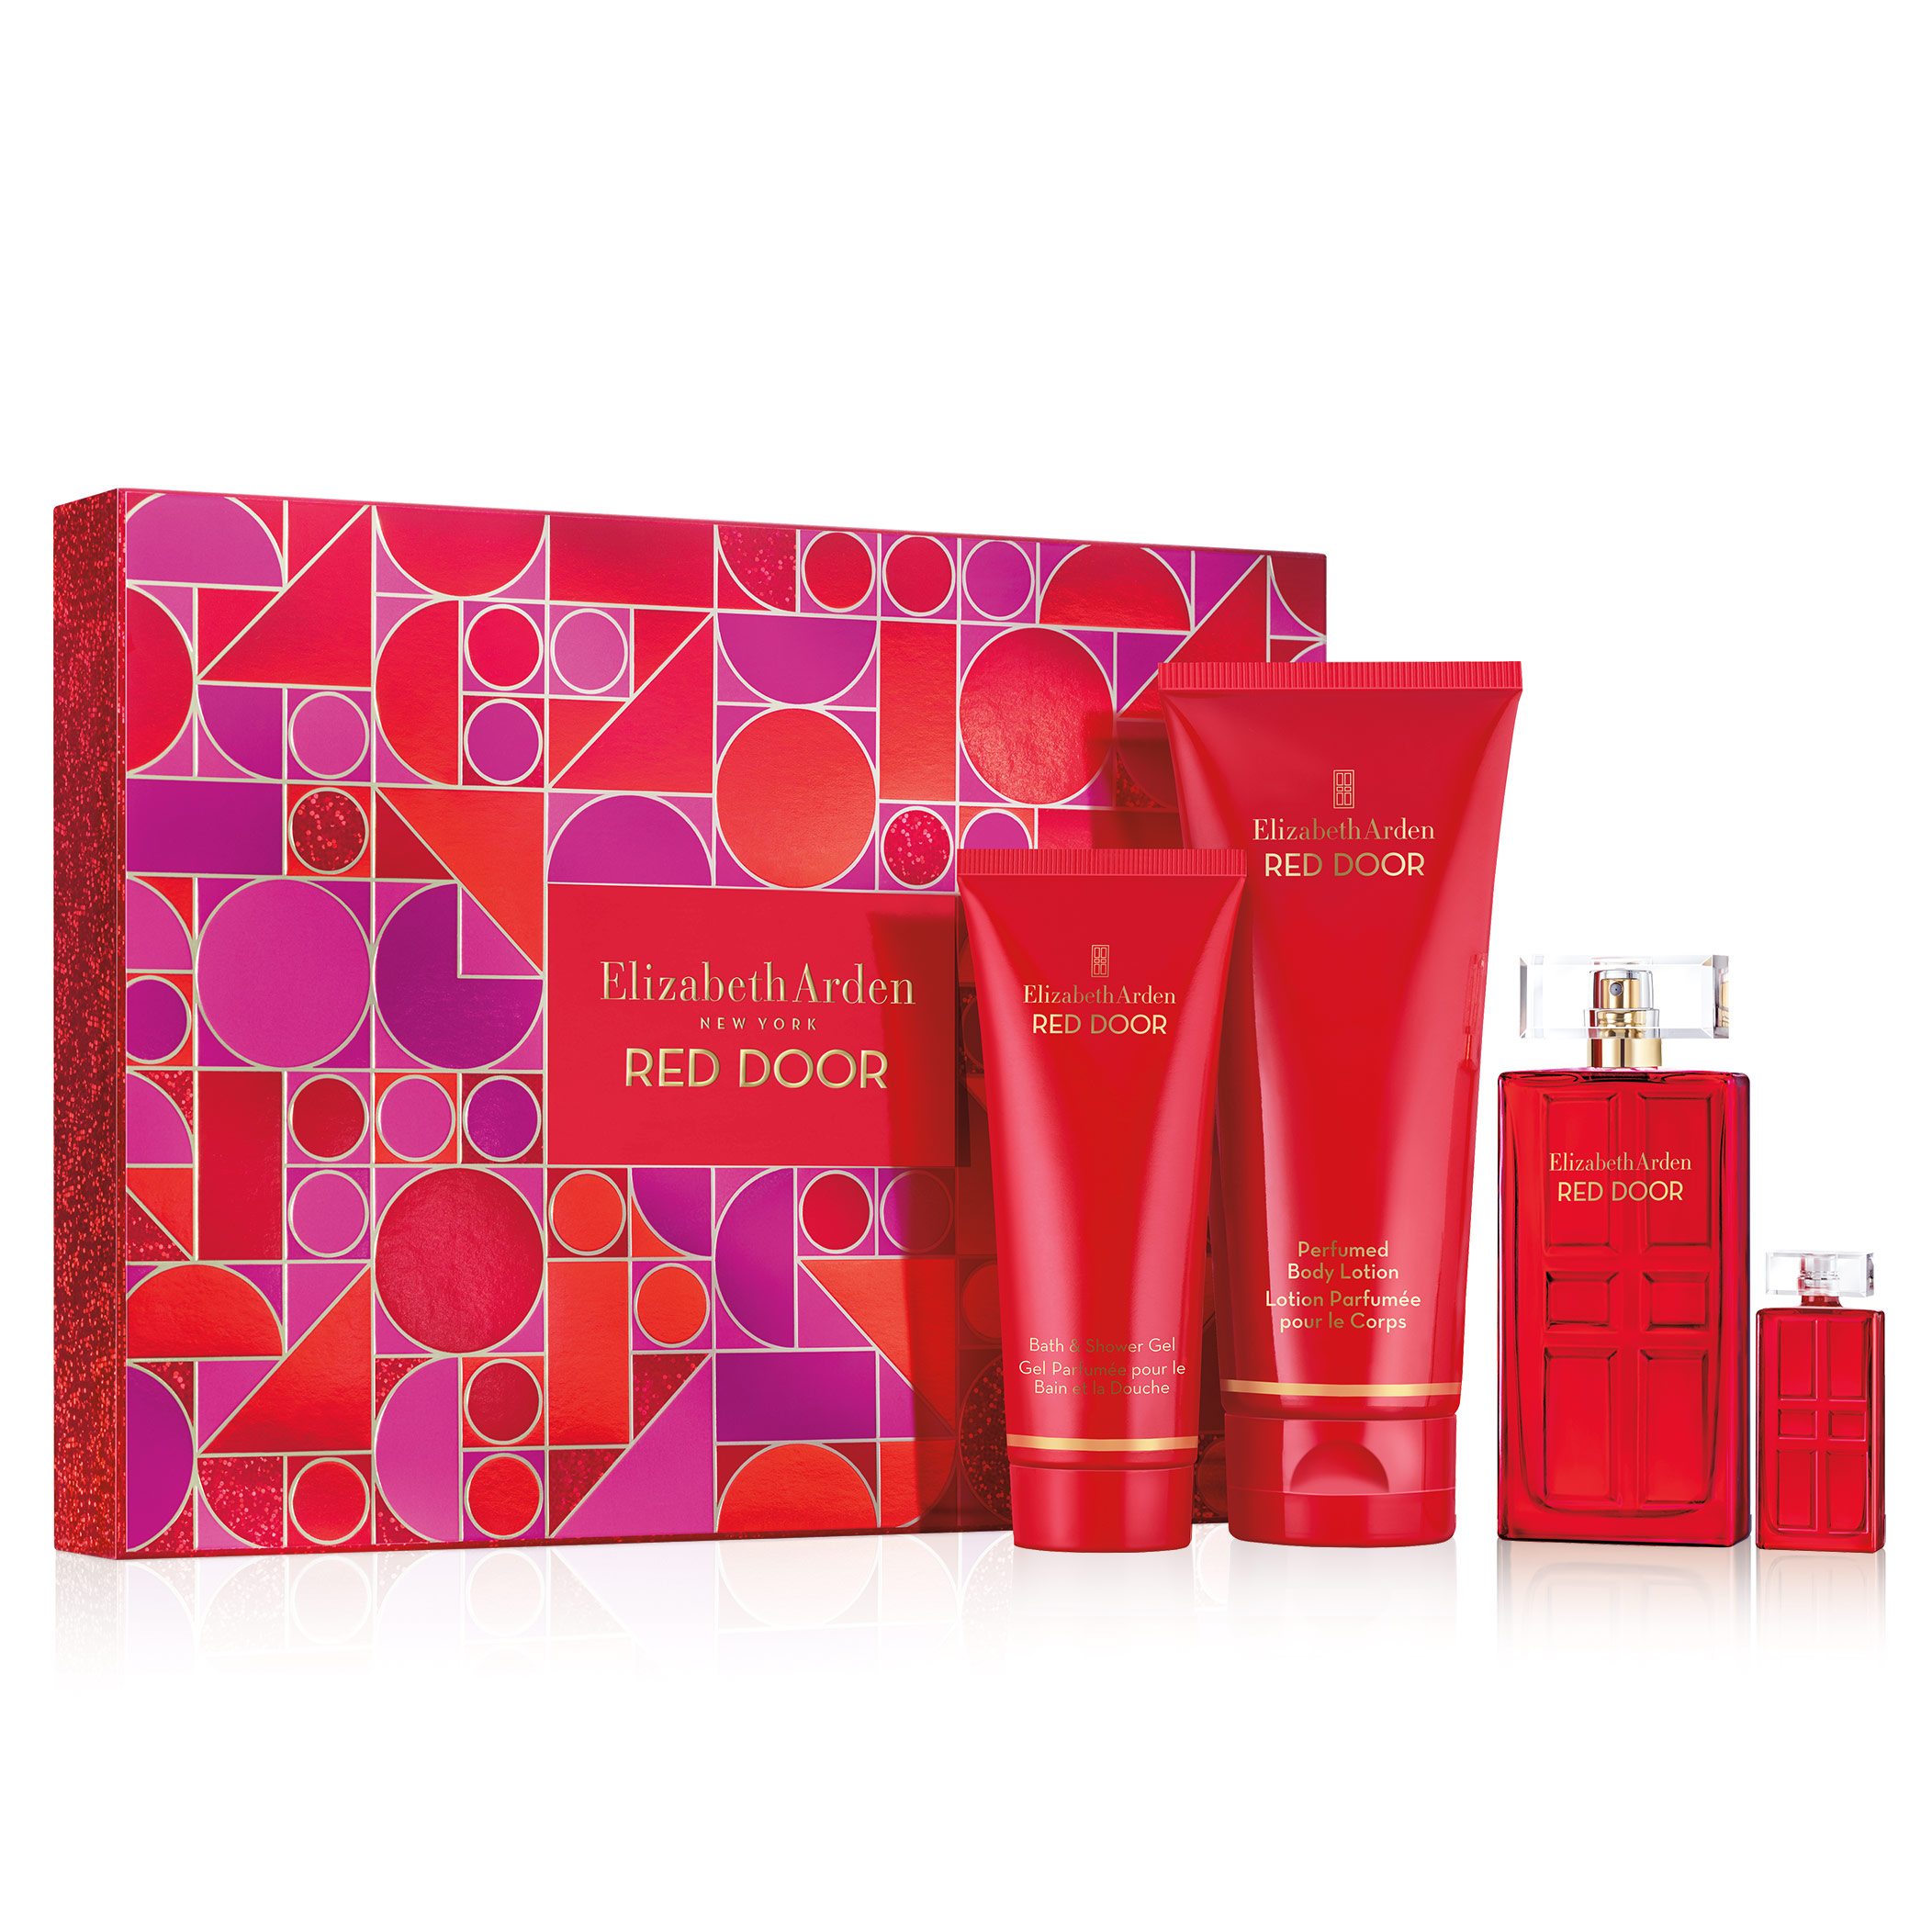 Red Door Glamour Collection A 153 Value Elizabeth Arden